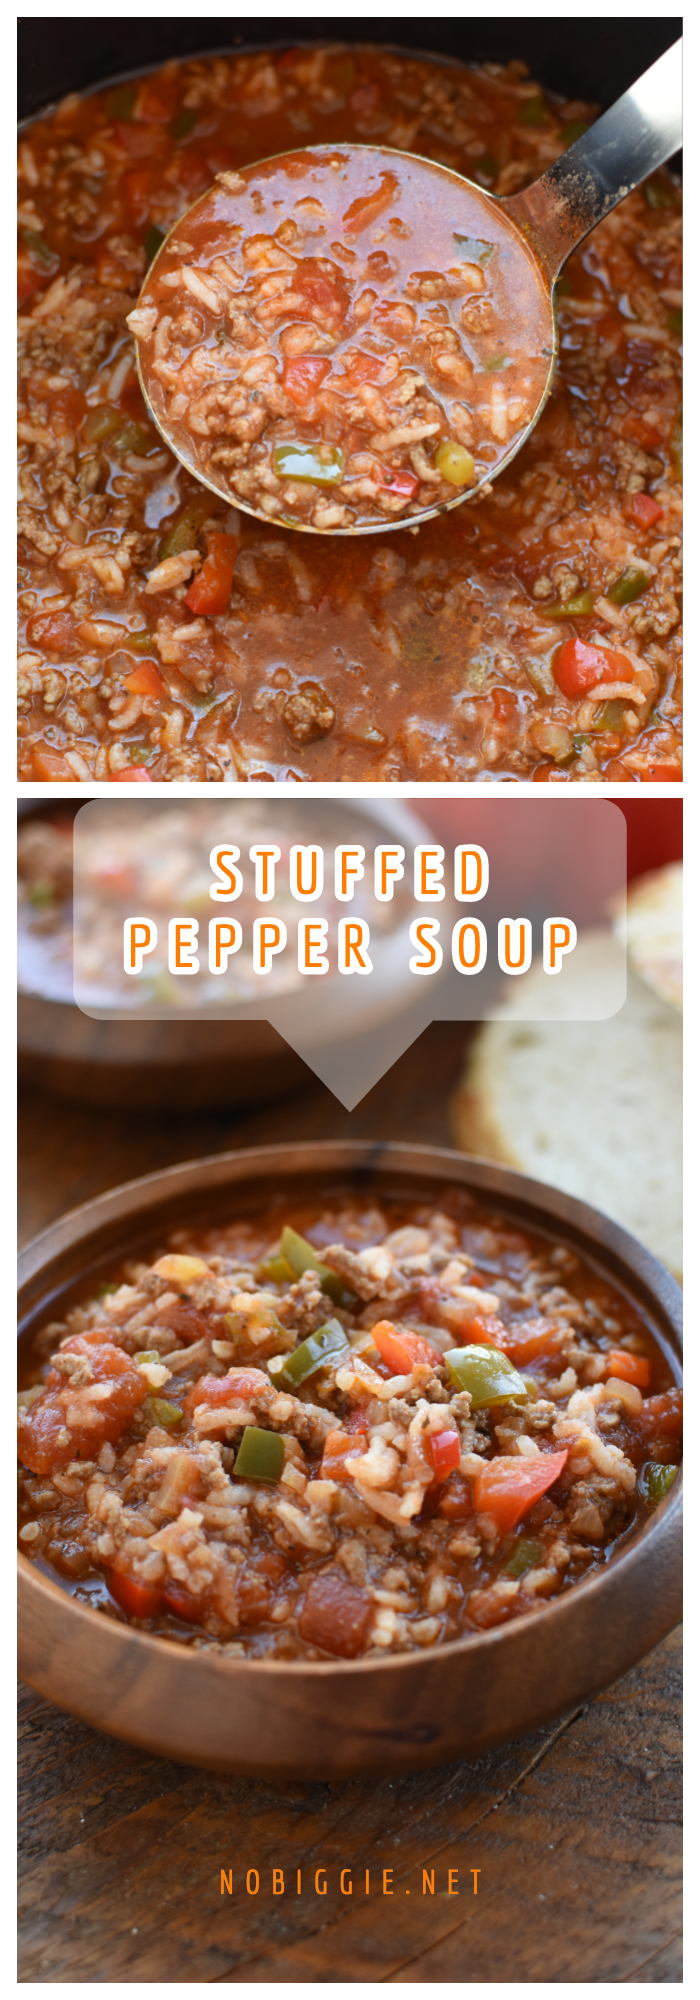 Stuffed pepper soup loaded with ground beef, chopped bell peppers, onions and rice in a tomato based broth. If you love stuffed peppers you will love this soup it is the same delicious taste with a lot less work! #stuffedpeppersoup #heartysoup #souprecipe #stuffedpepper #nobiggierecipes